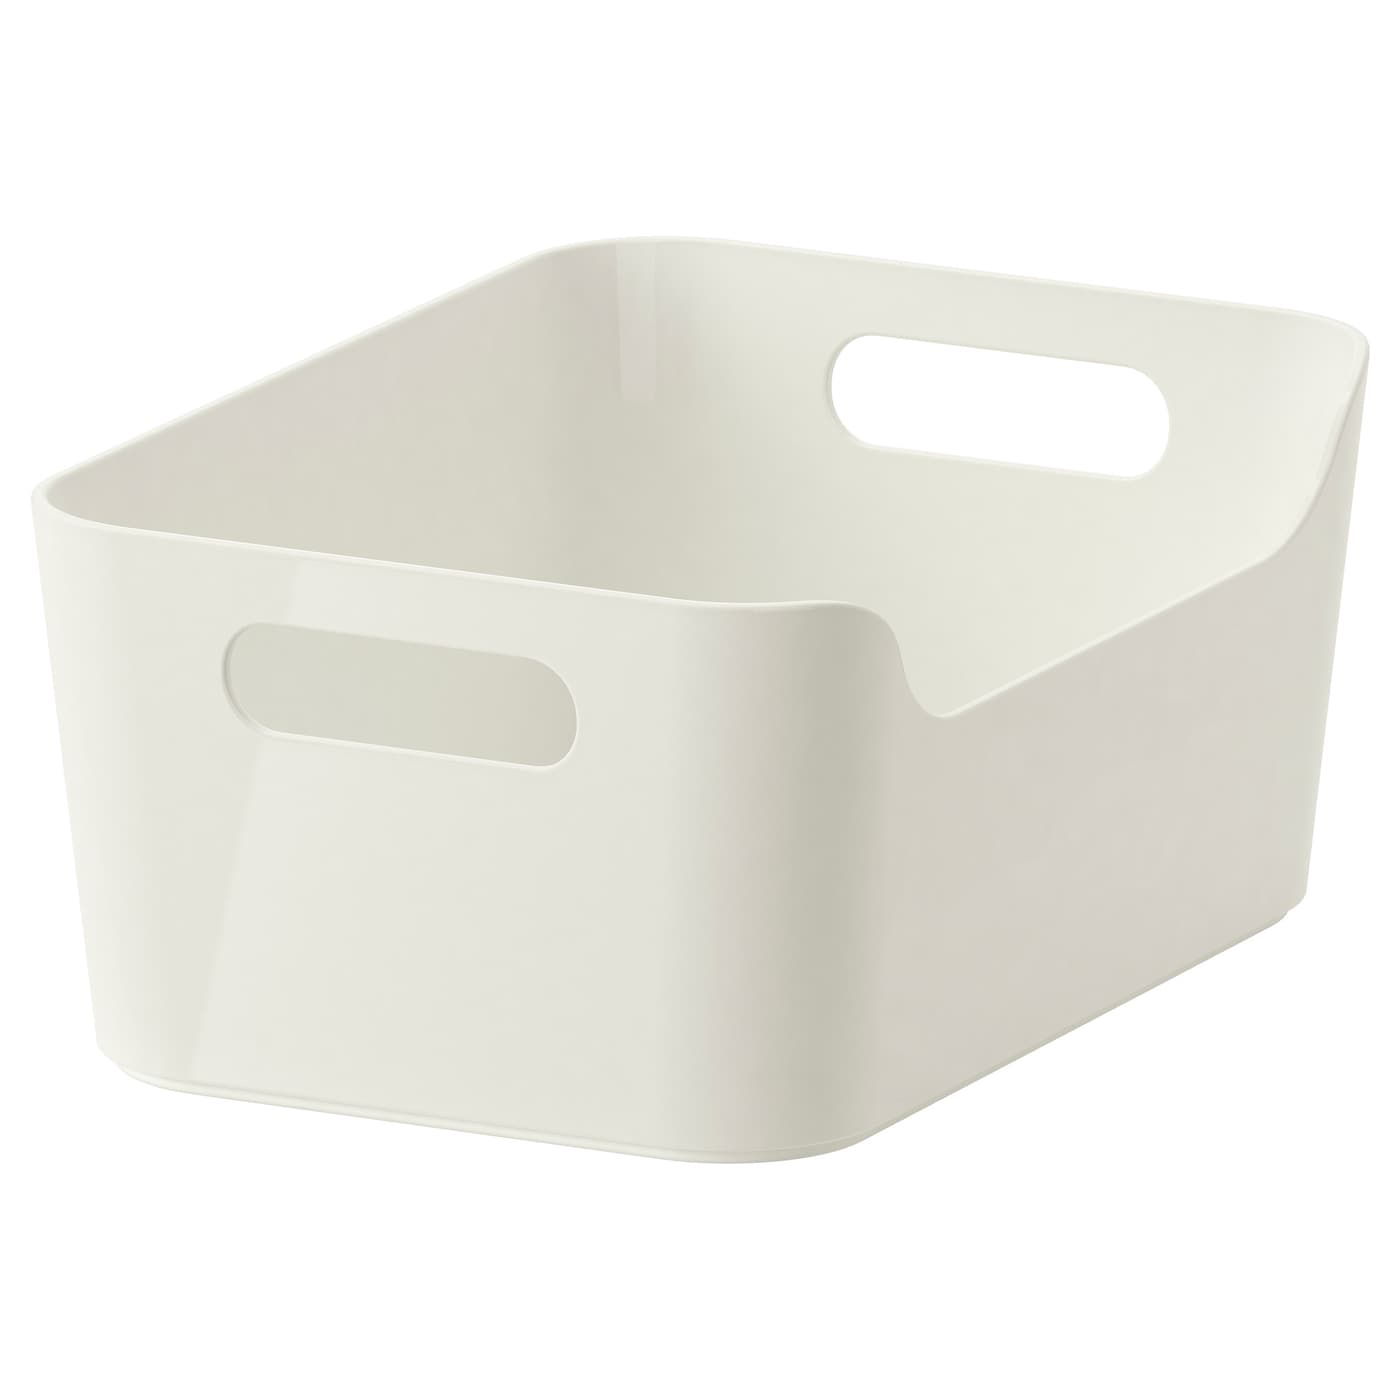 Variera box white 24x17 cm ikea - Bac plastique transparent ikea ...